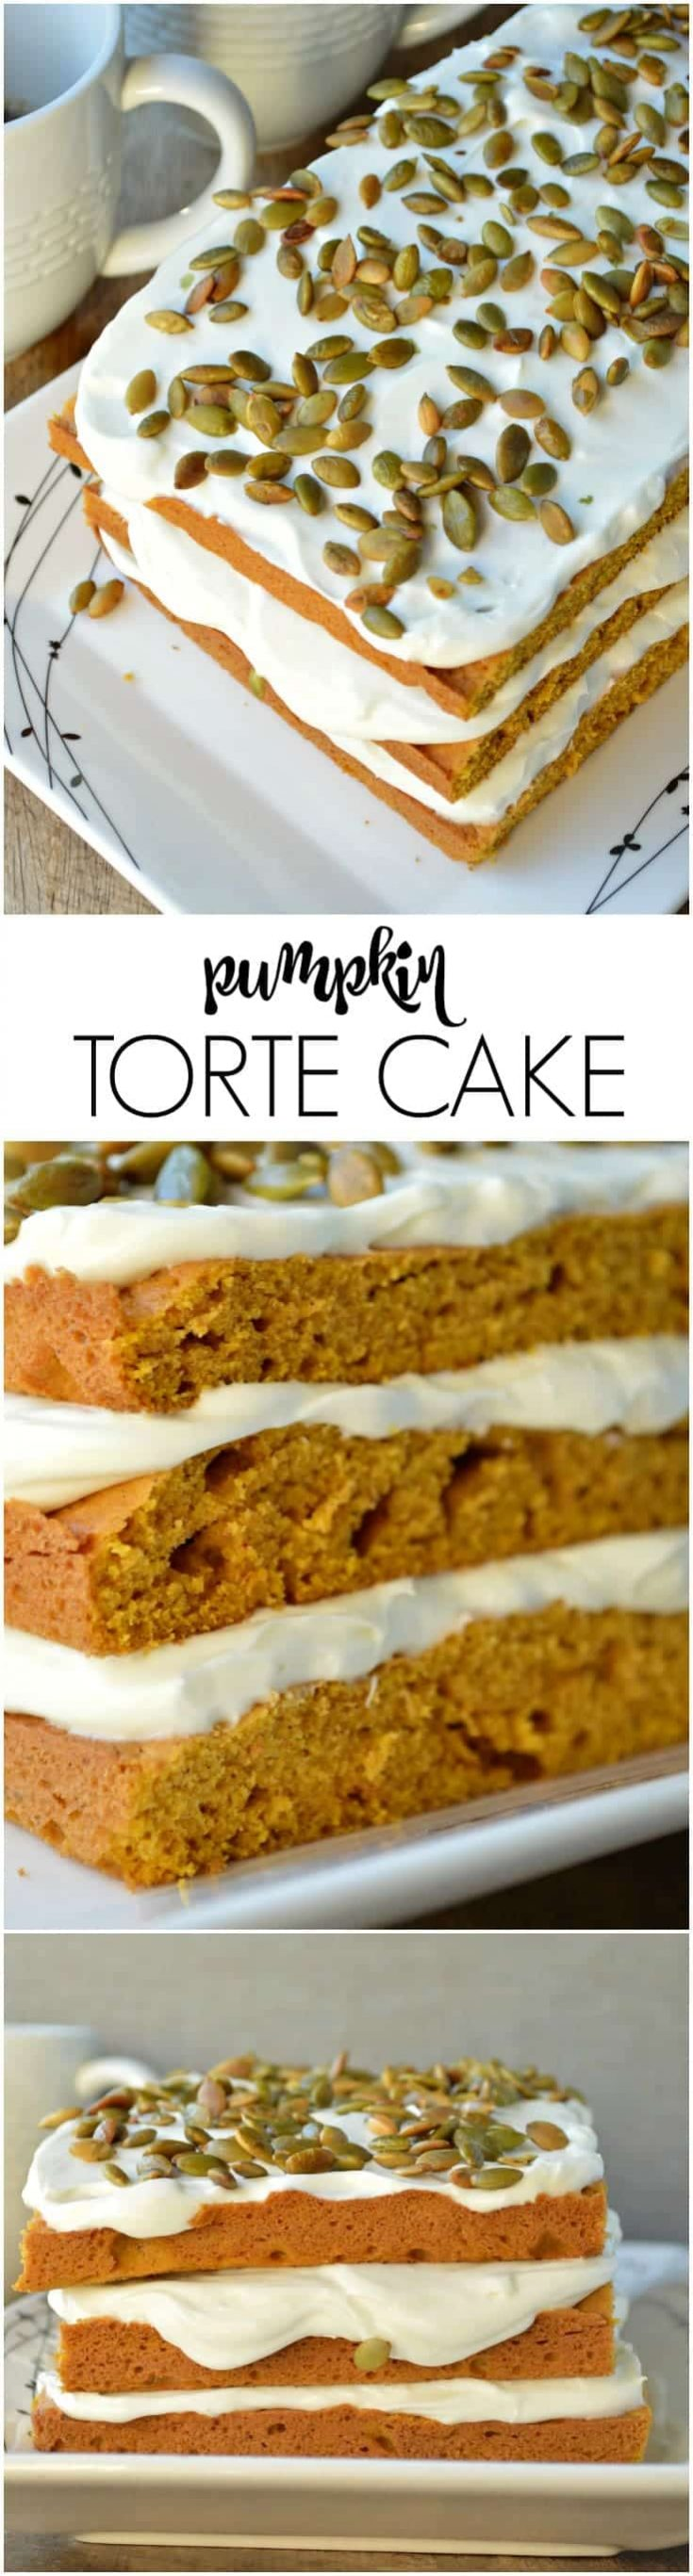 The simplest pumpkin dessert around but it LOOKS and TASTES terrific! Pumpkin Torte Cake is stacked high with thick layers of cream cheese frosting